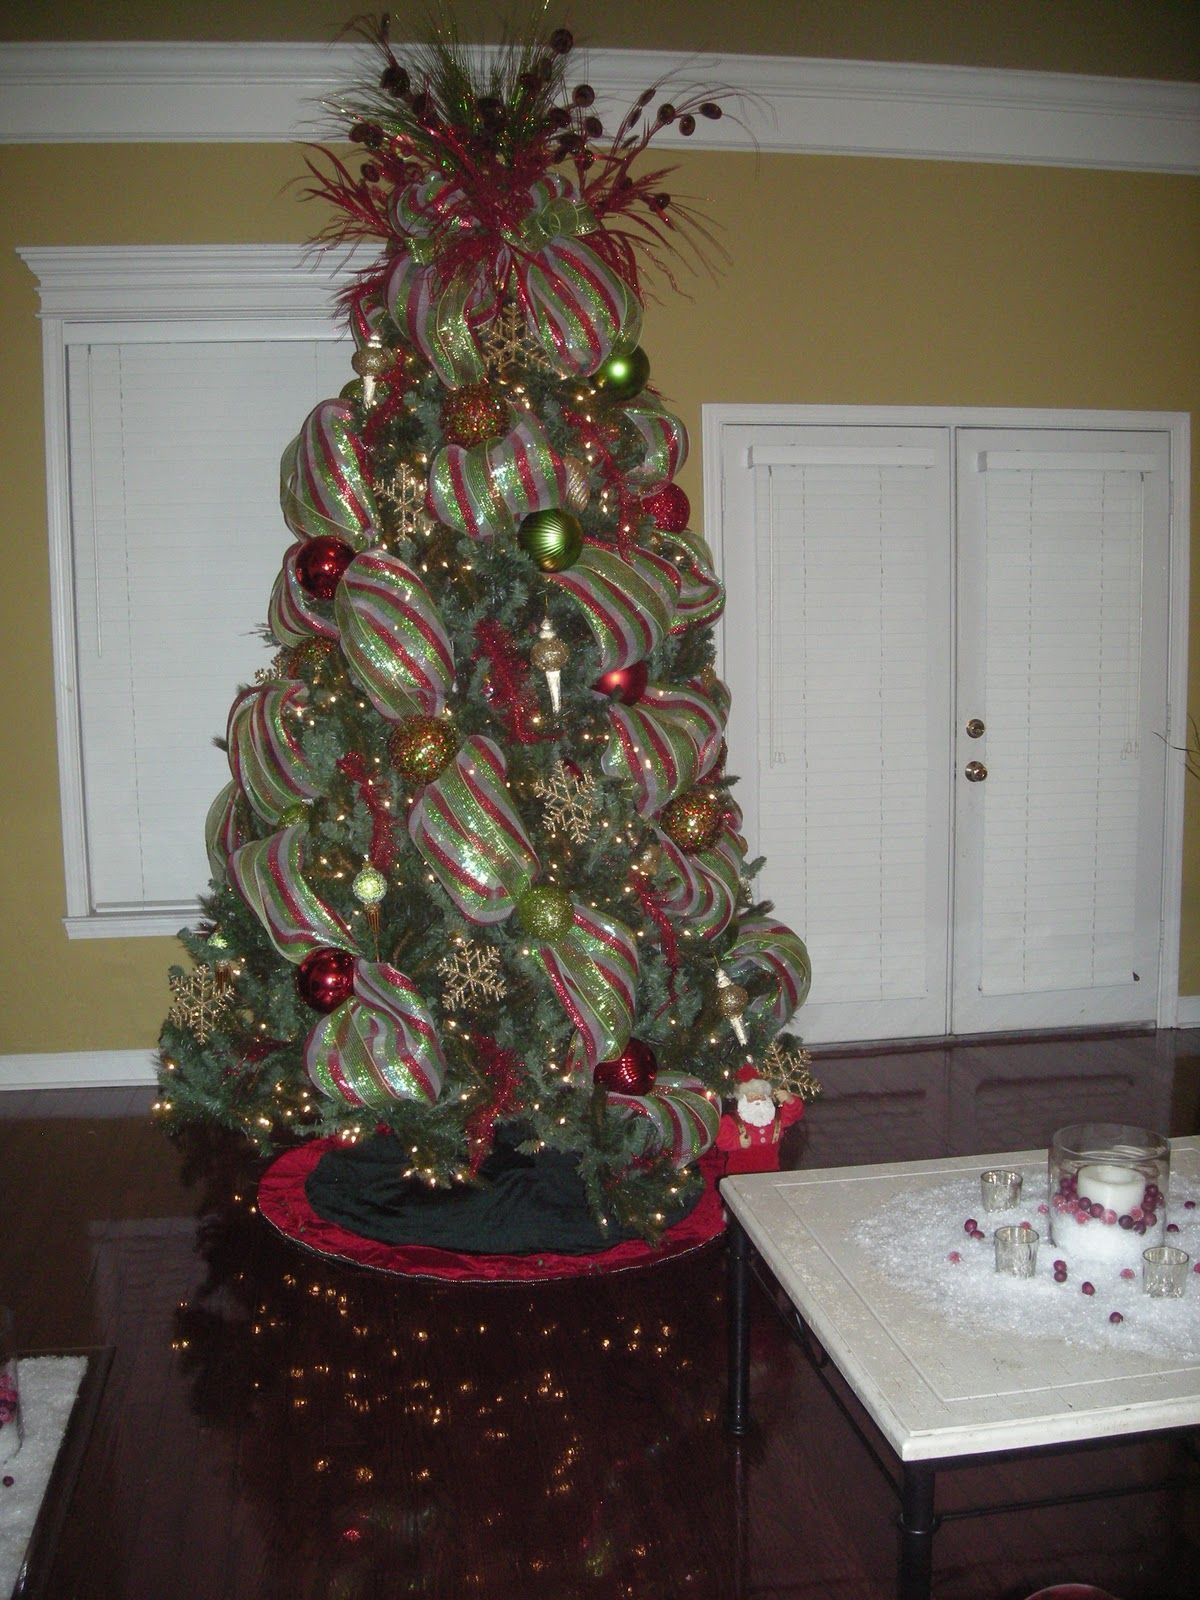 I want this tree christmas tree decorated with mesh by stylish spaces designed for living